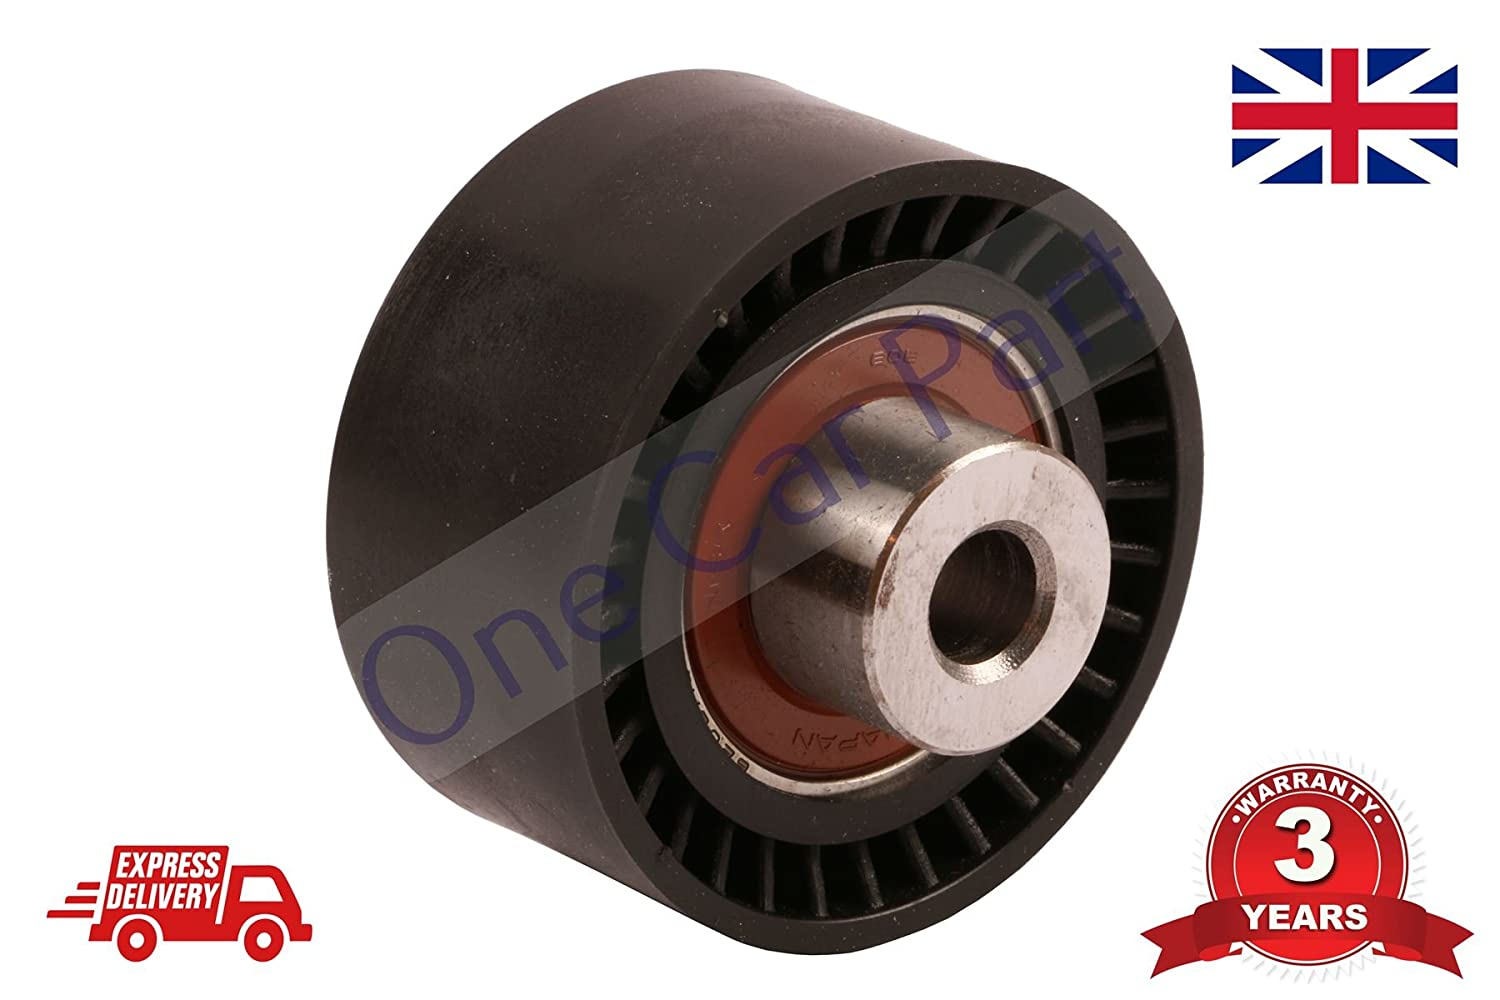 307 308 407 607 807 Fan Belt Tensioner Pulley V Ribbed Belt Idler 2.0 PARLEX